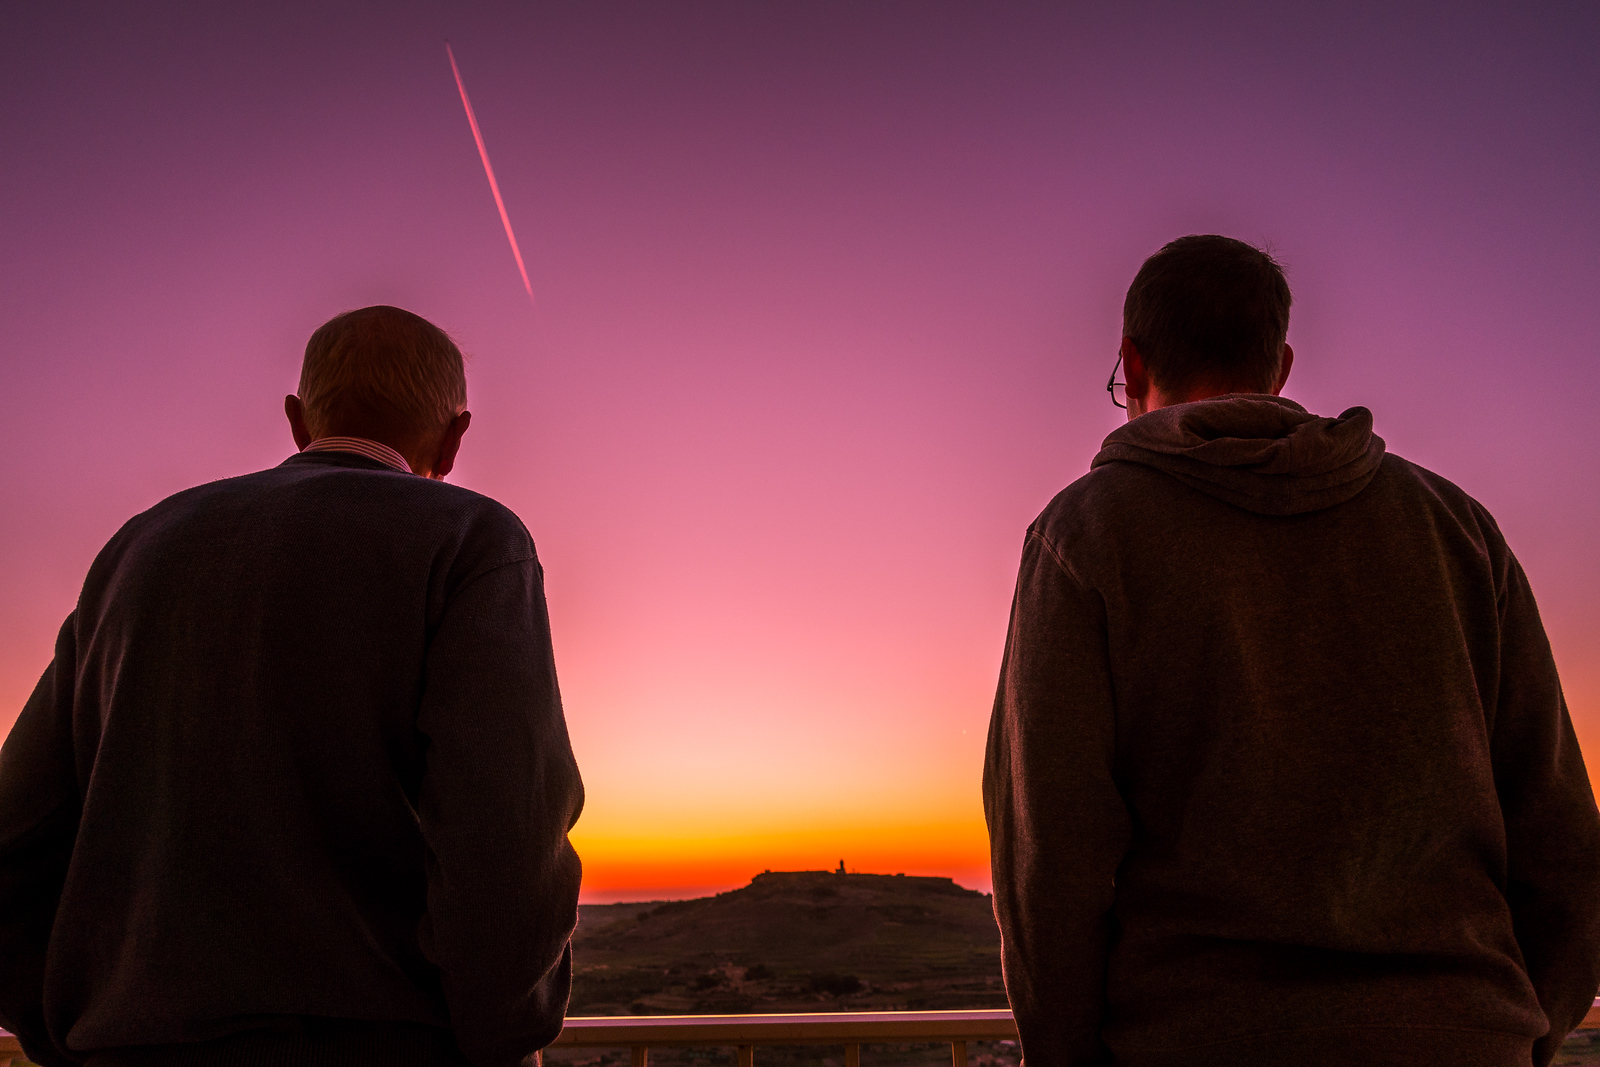 Malta Pictures - watching the sunset in Zebbug